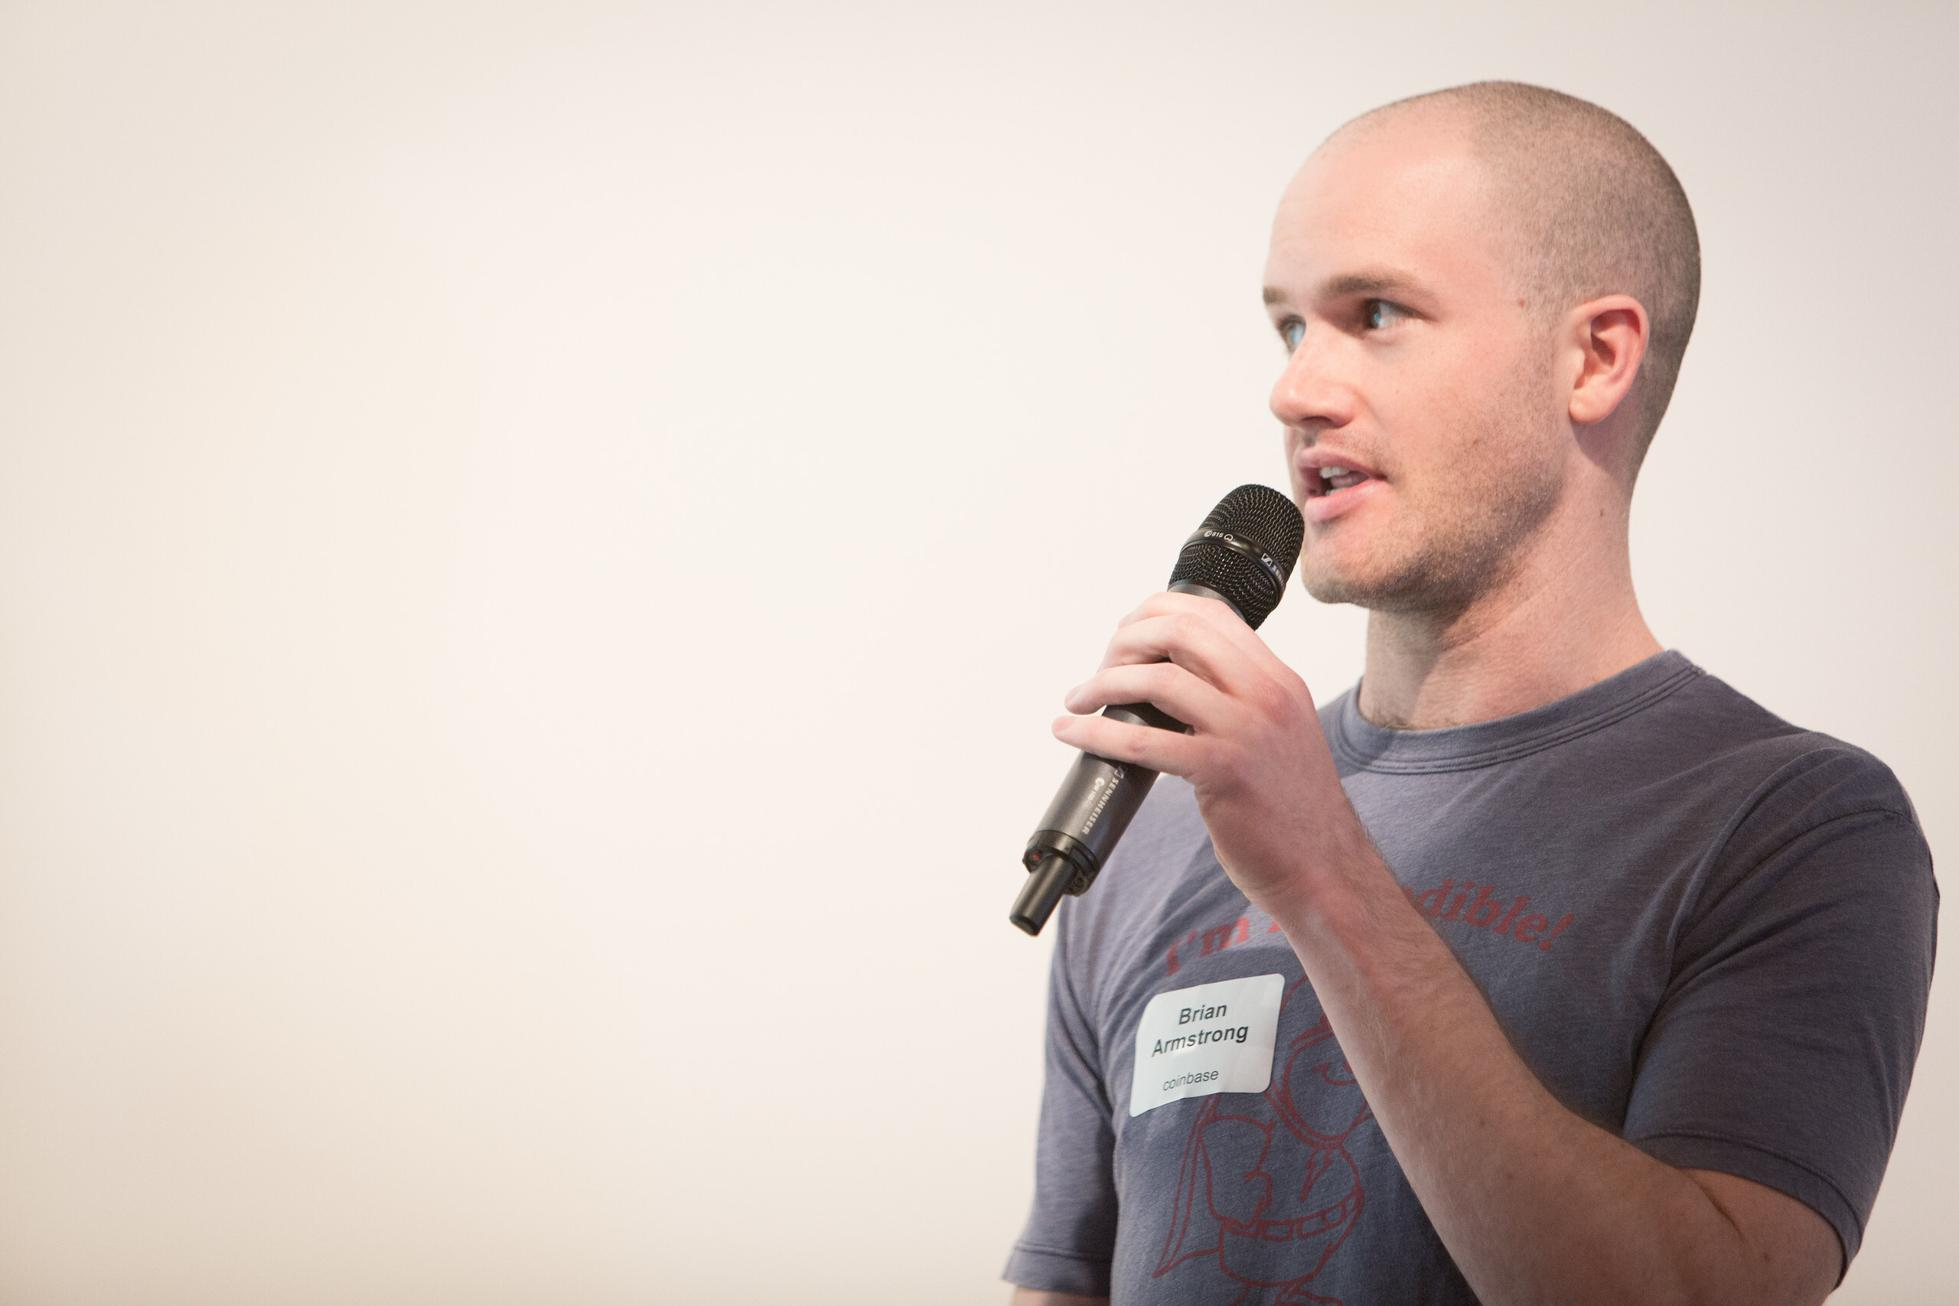 Brian Armstrong presenting at Y Combinator in 2012.